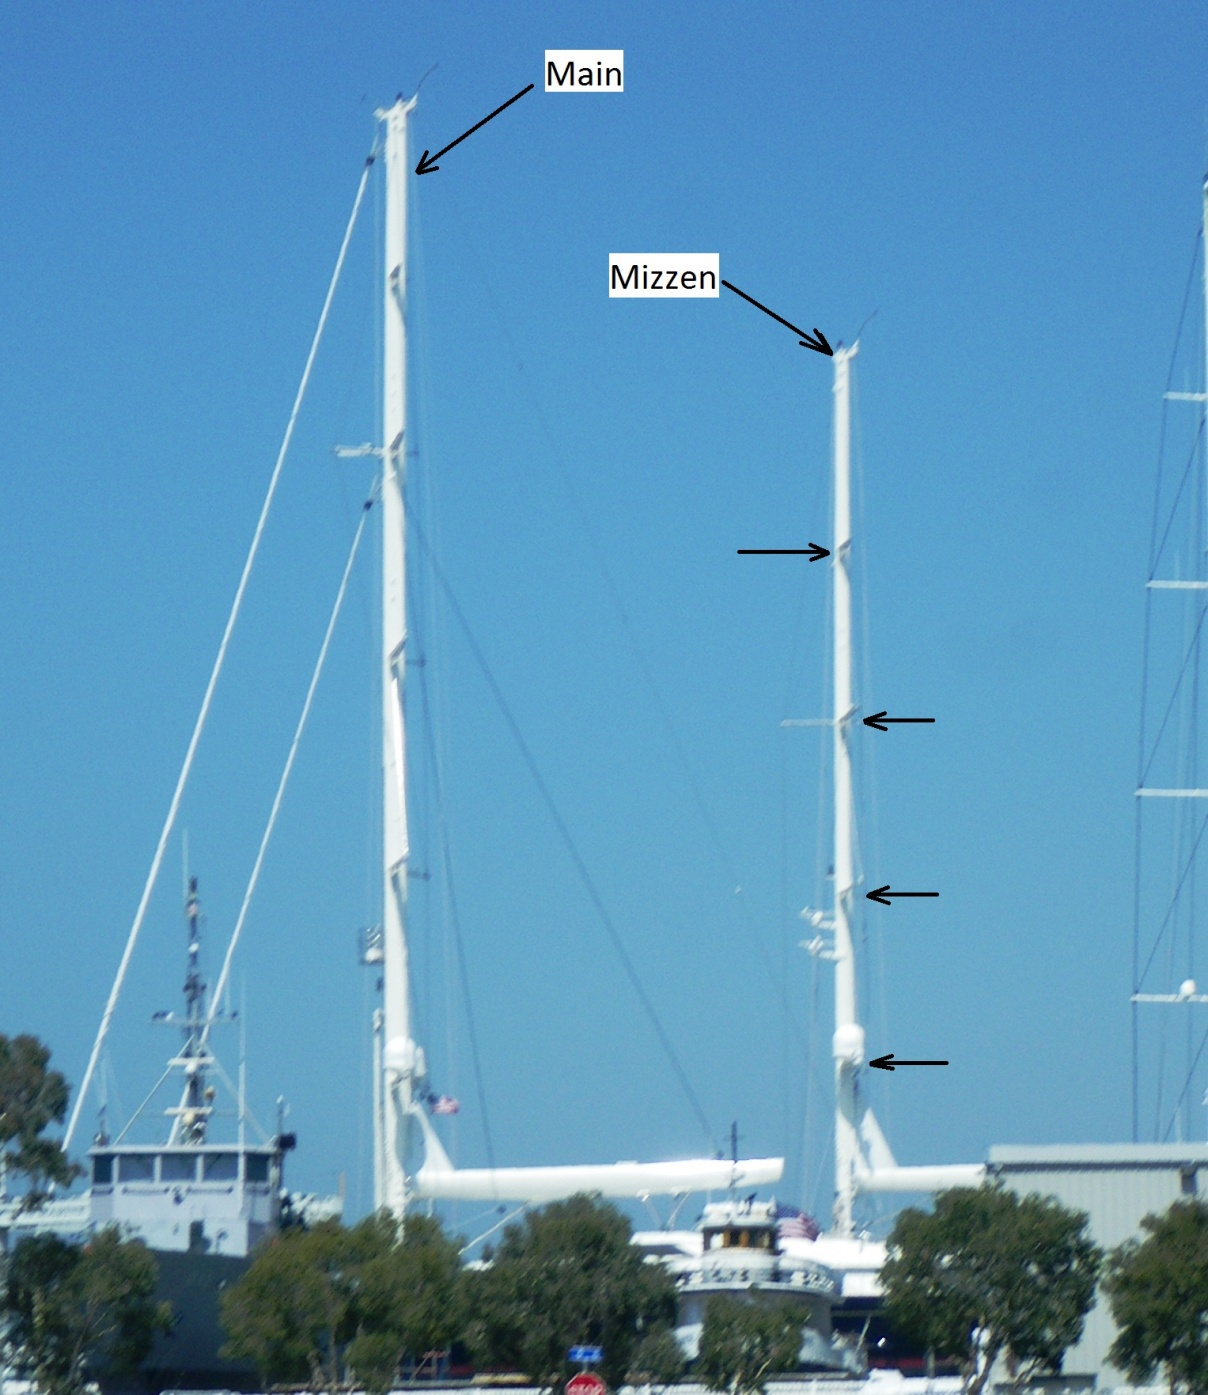 Click image for larger version  Name:4 Spreader Mizzen.jpg Views:167 Size:409.8 KB ID:32173